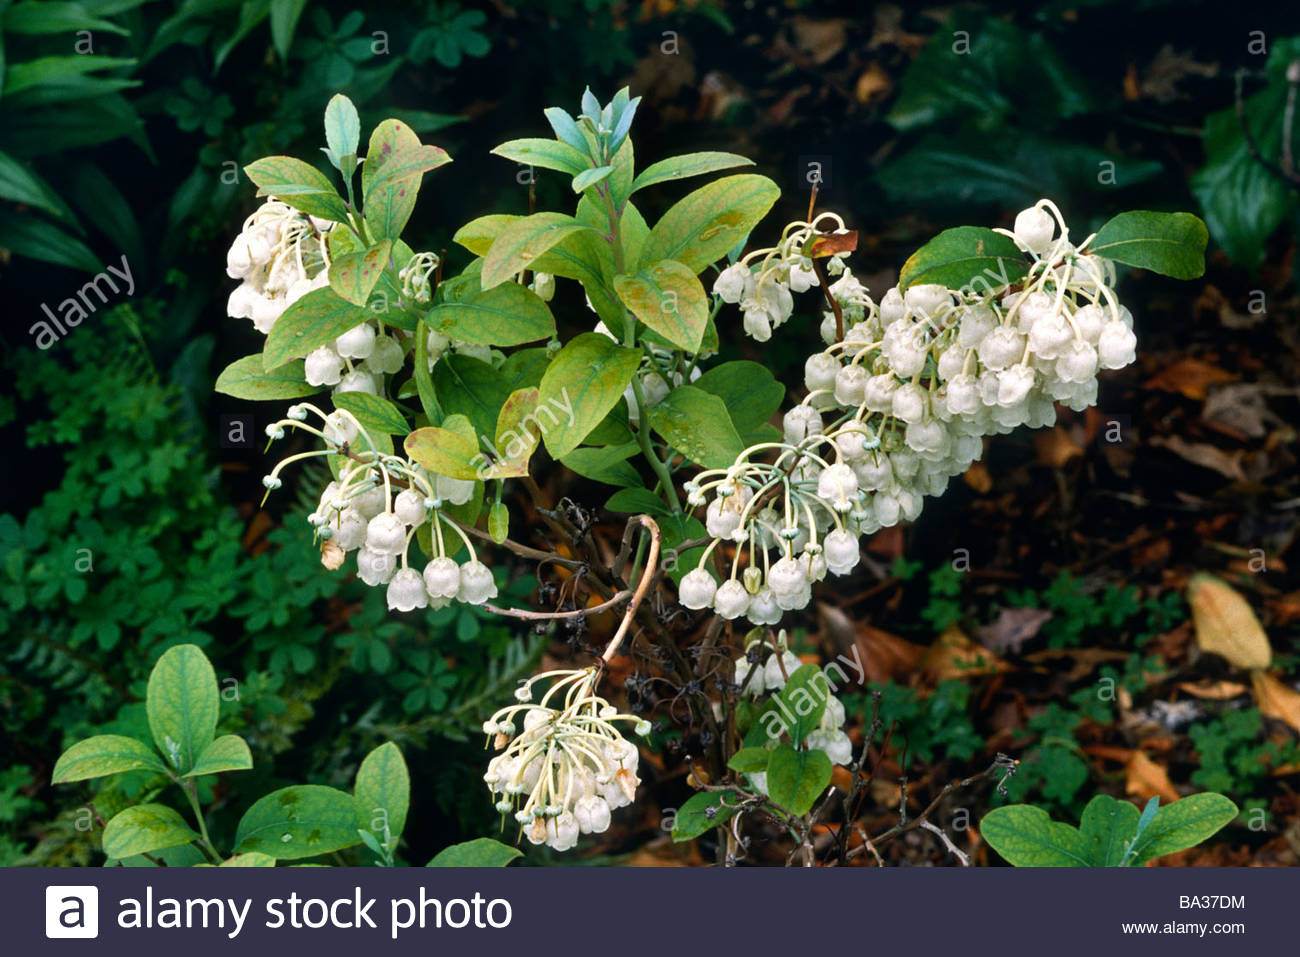 Zenobia pulverulenta stock photos zenobia pulverulenta stock zenobia pulverulenta dusty zenobia small semi evergreen shrub with bell shaped white flowers in summer mightylinksfo